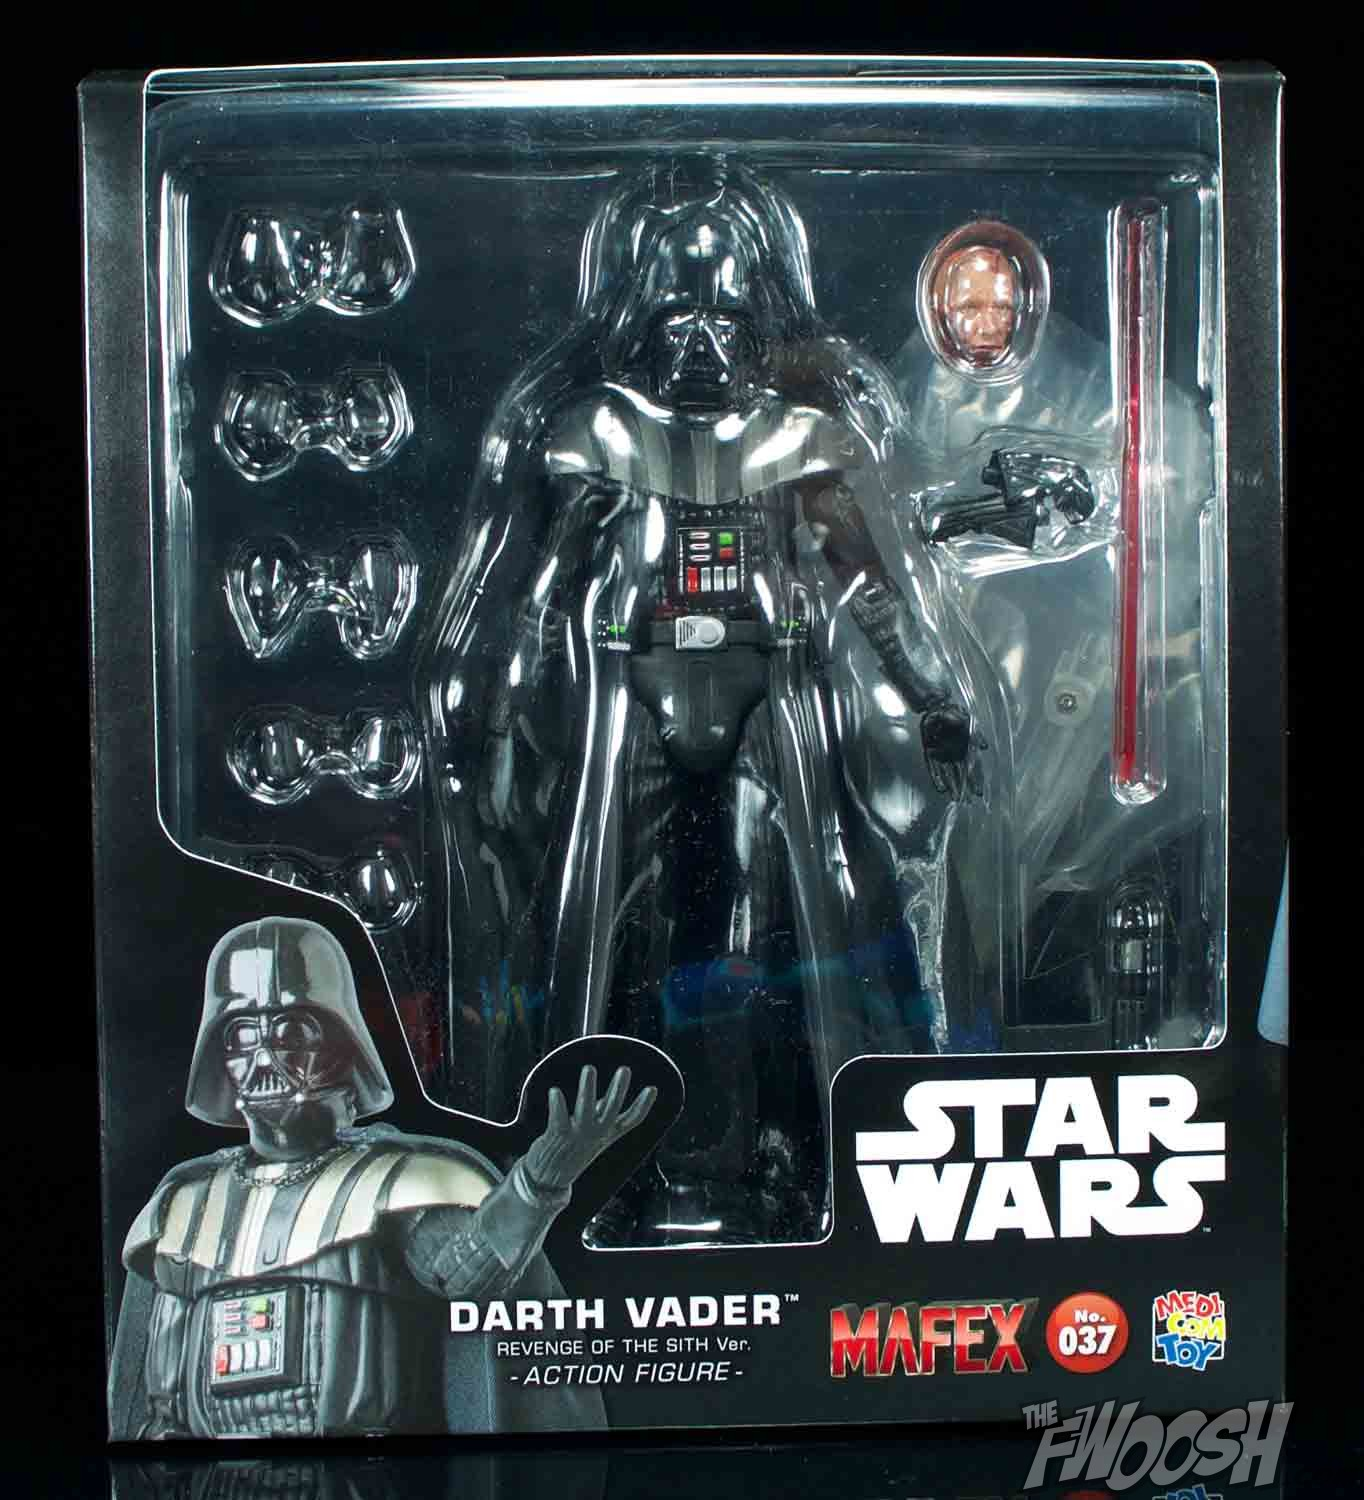 Medicom Mafex Star Wars Revenge Of The Sith Darth Vader